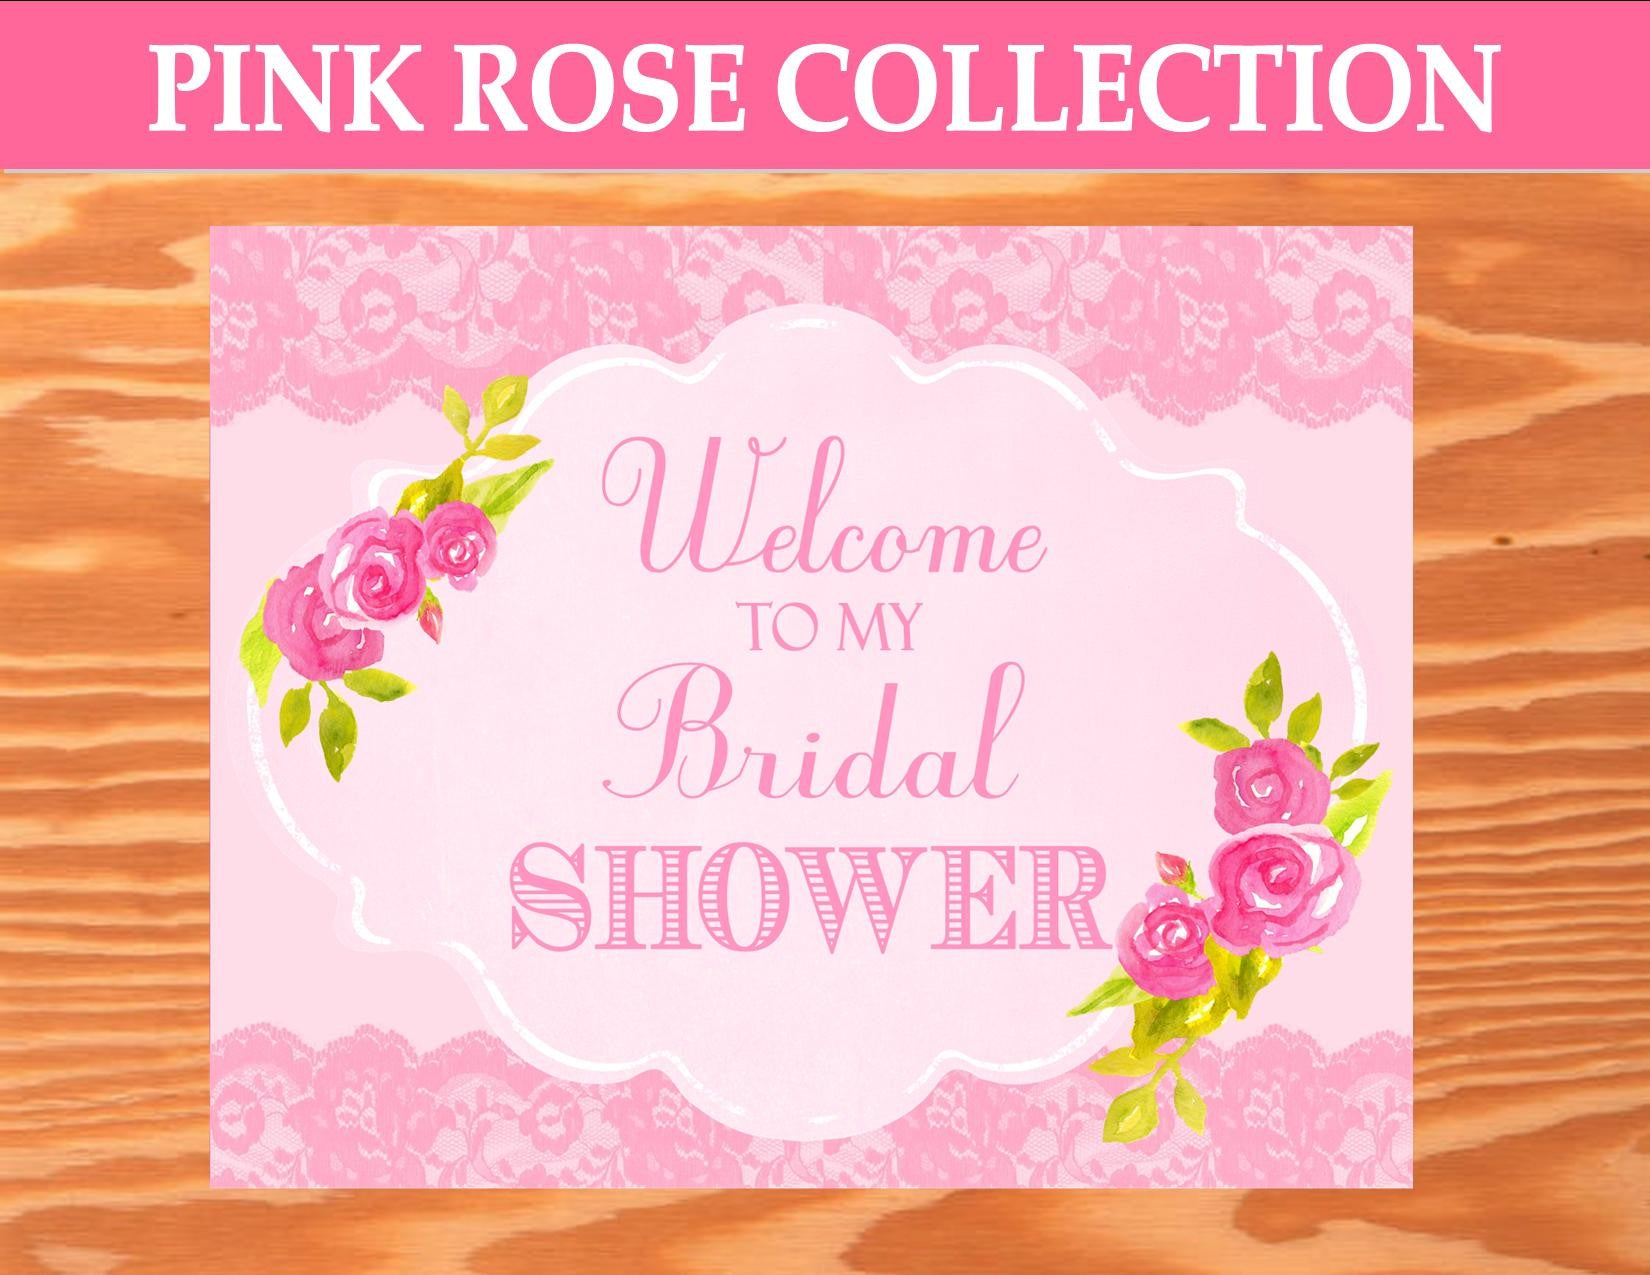 PINK BRIDAL SHOWER - BRIDAL SHOWER WELCOME SIGN